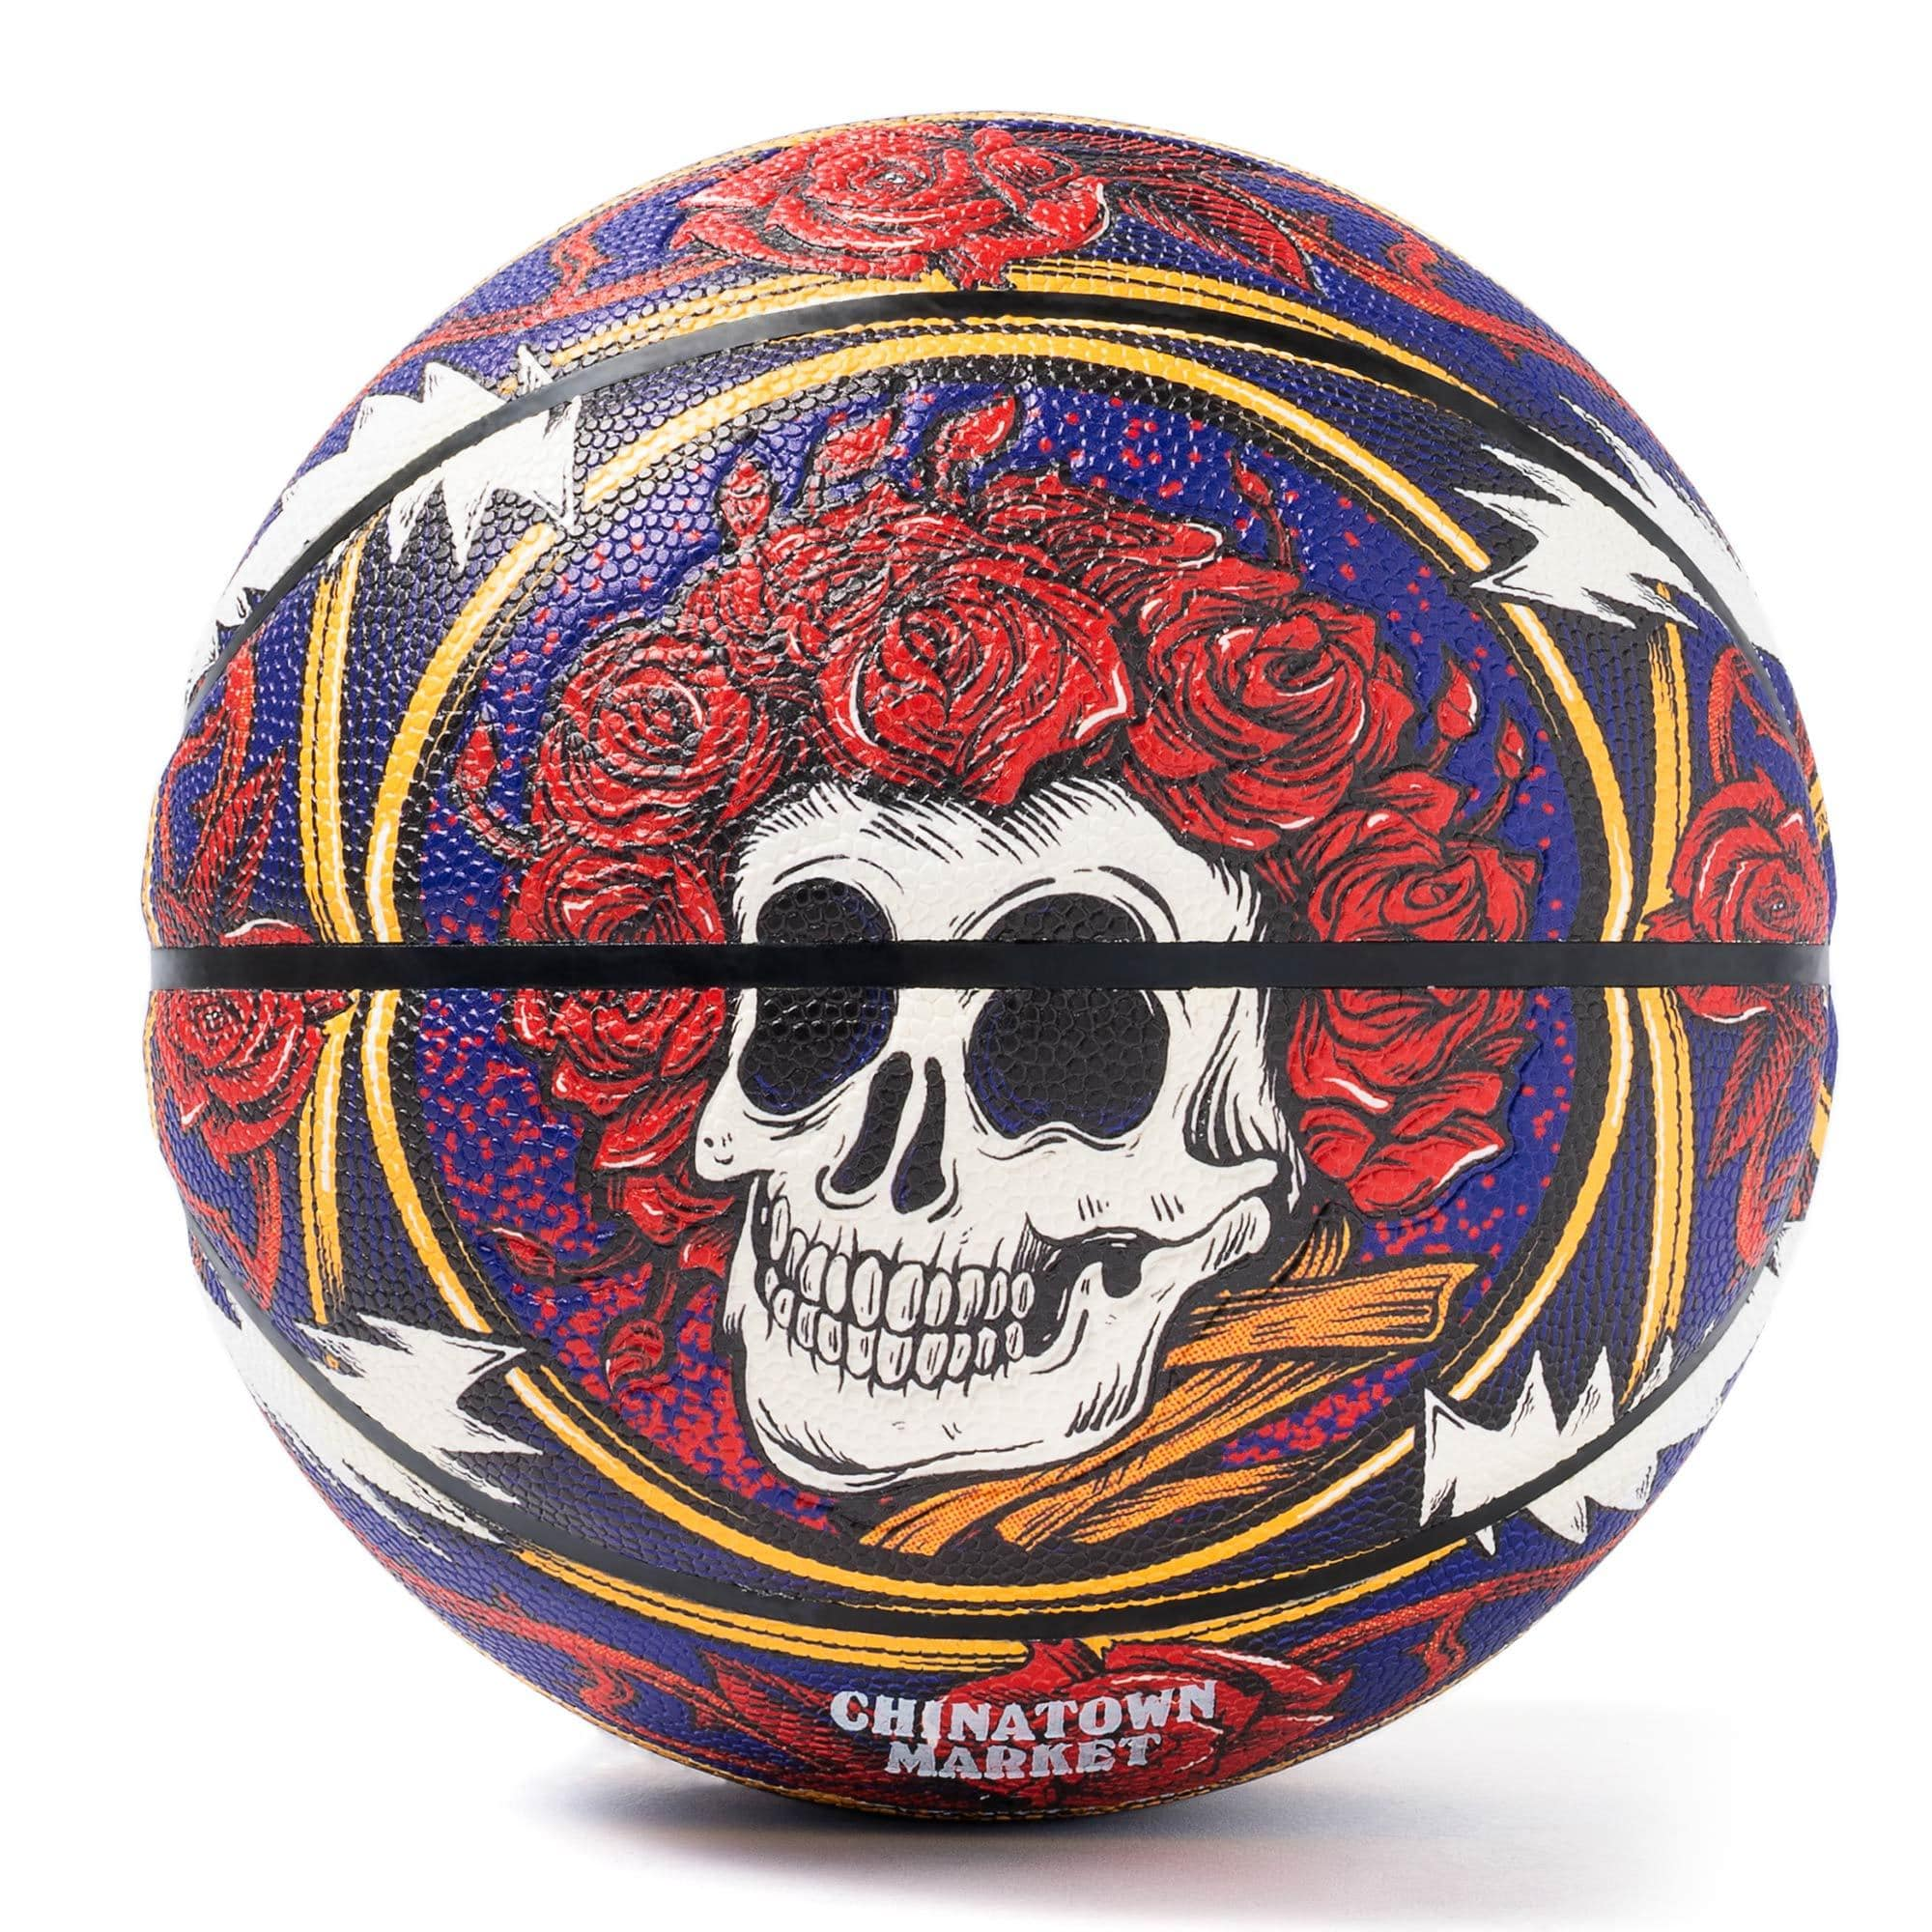 China Town Market Accessories Border Bandana Basketball